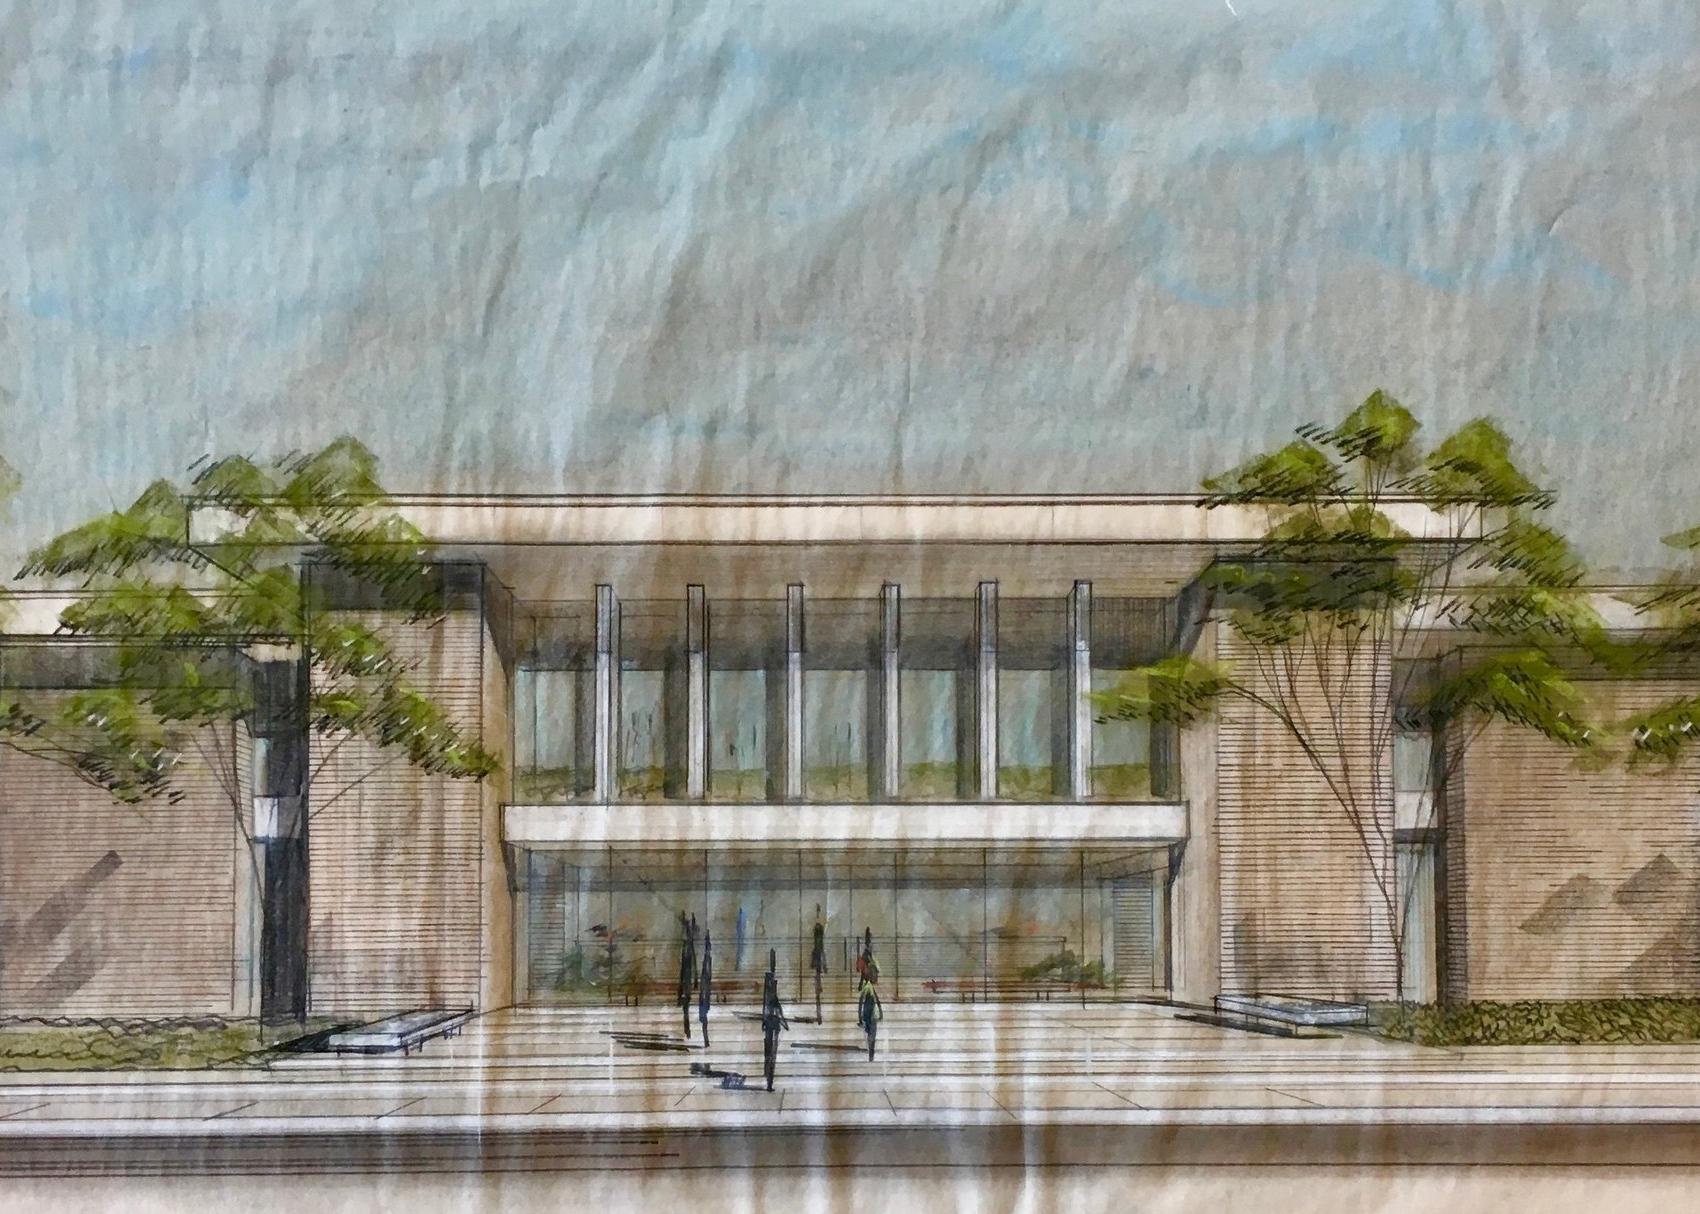 John Desmond, city hall rendering,hammond, la,John Desmond Papers, Louisiana and Lower Mississippi Valley Collections, LSU Libraries.